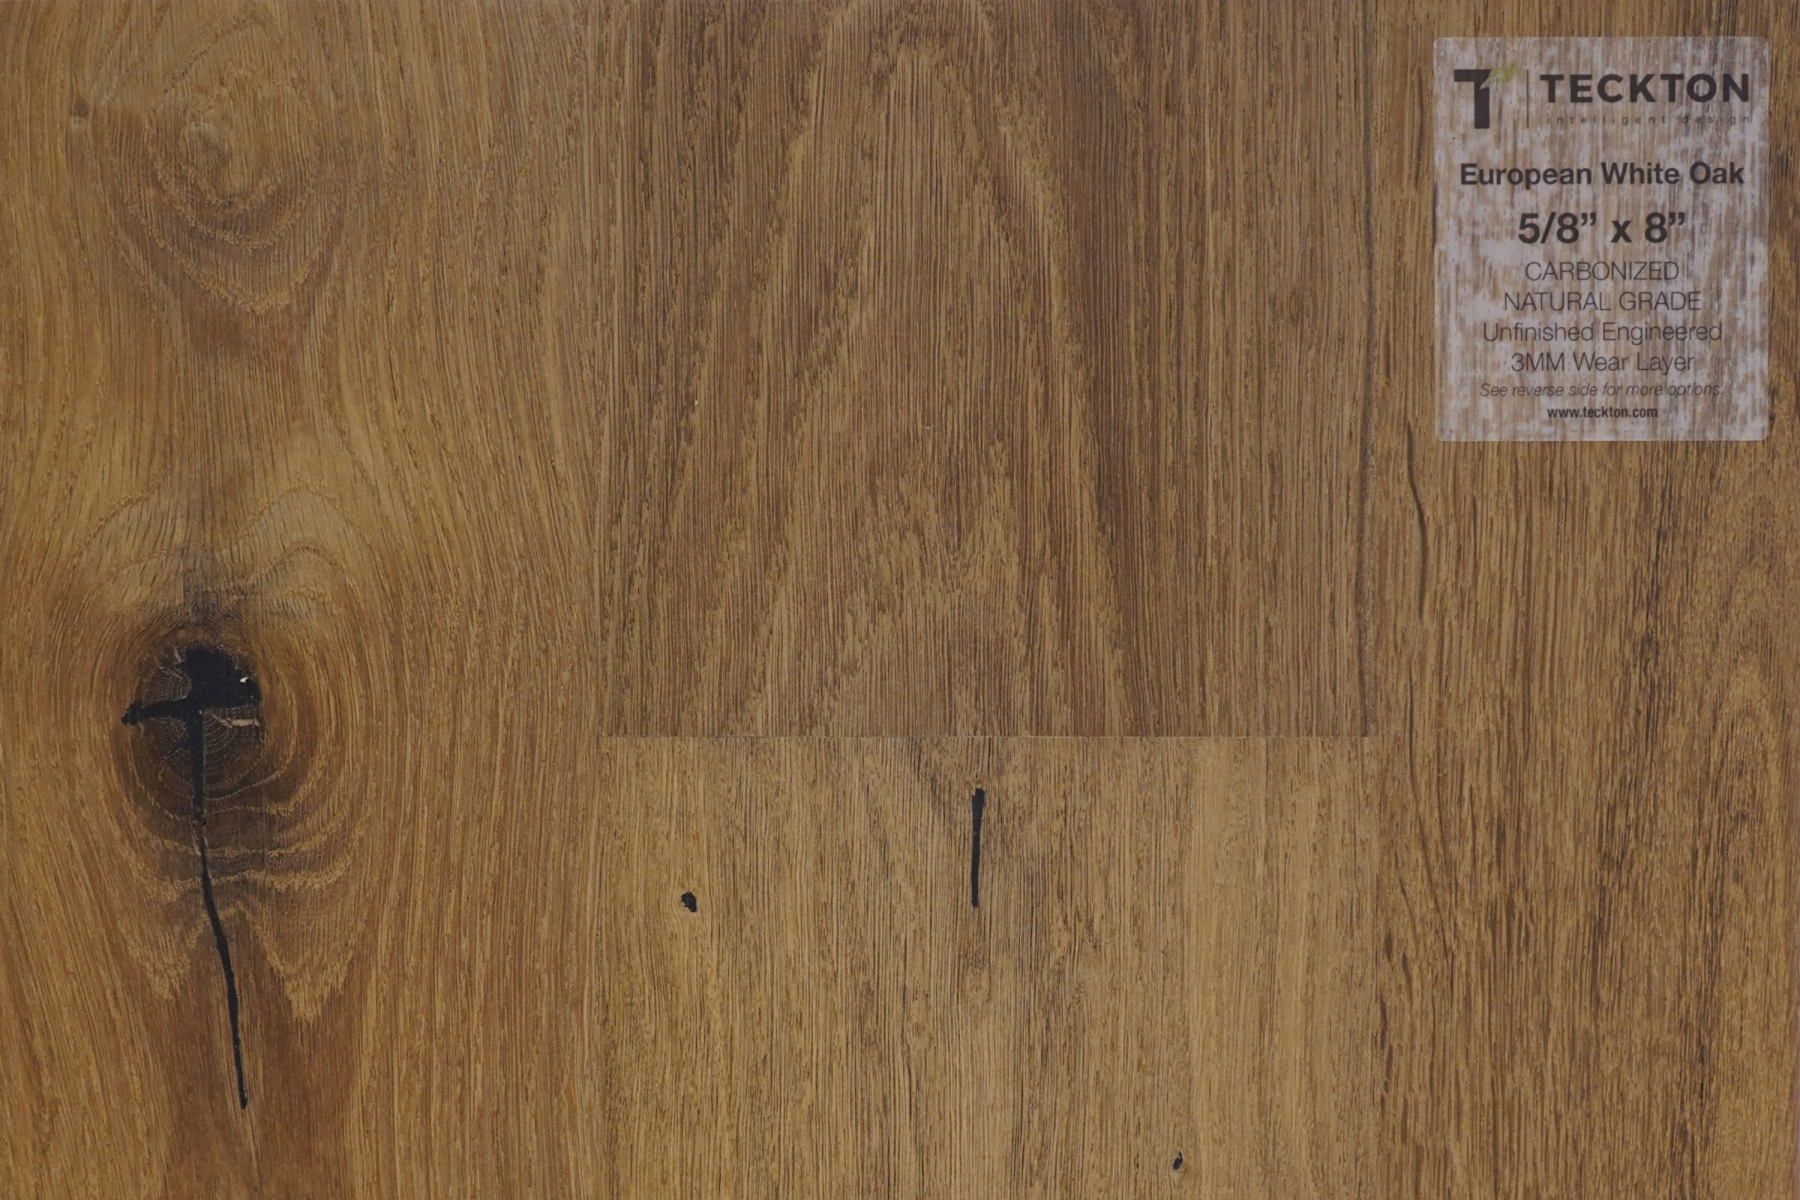 "European White Oak - Carbonized Natural Grade  -  5/8"" x 8"""